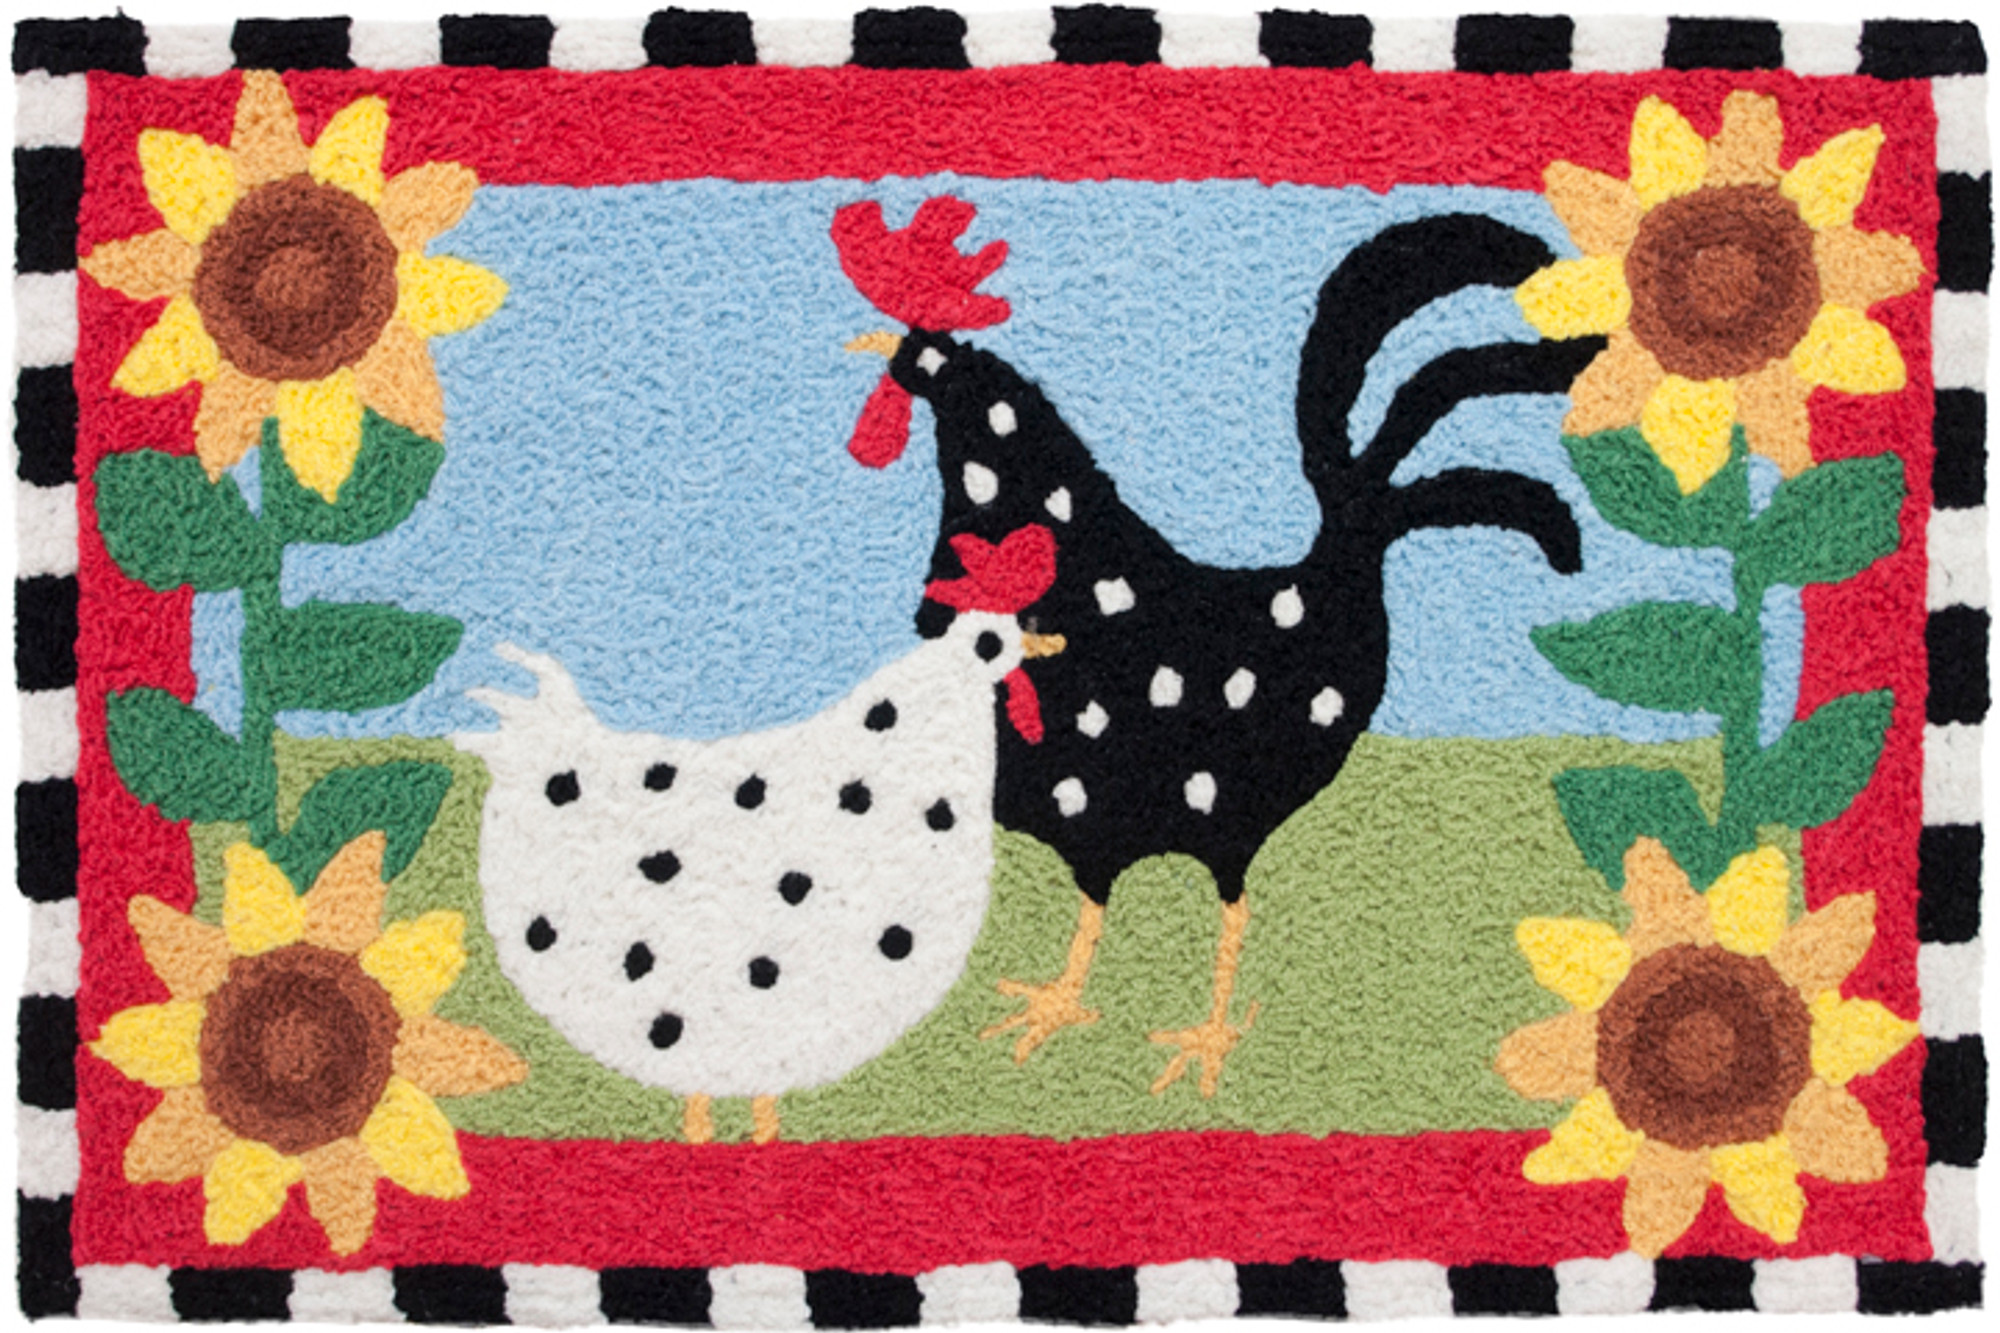 A colorful, machine washable Jellybean® rug featuring funky chickens!